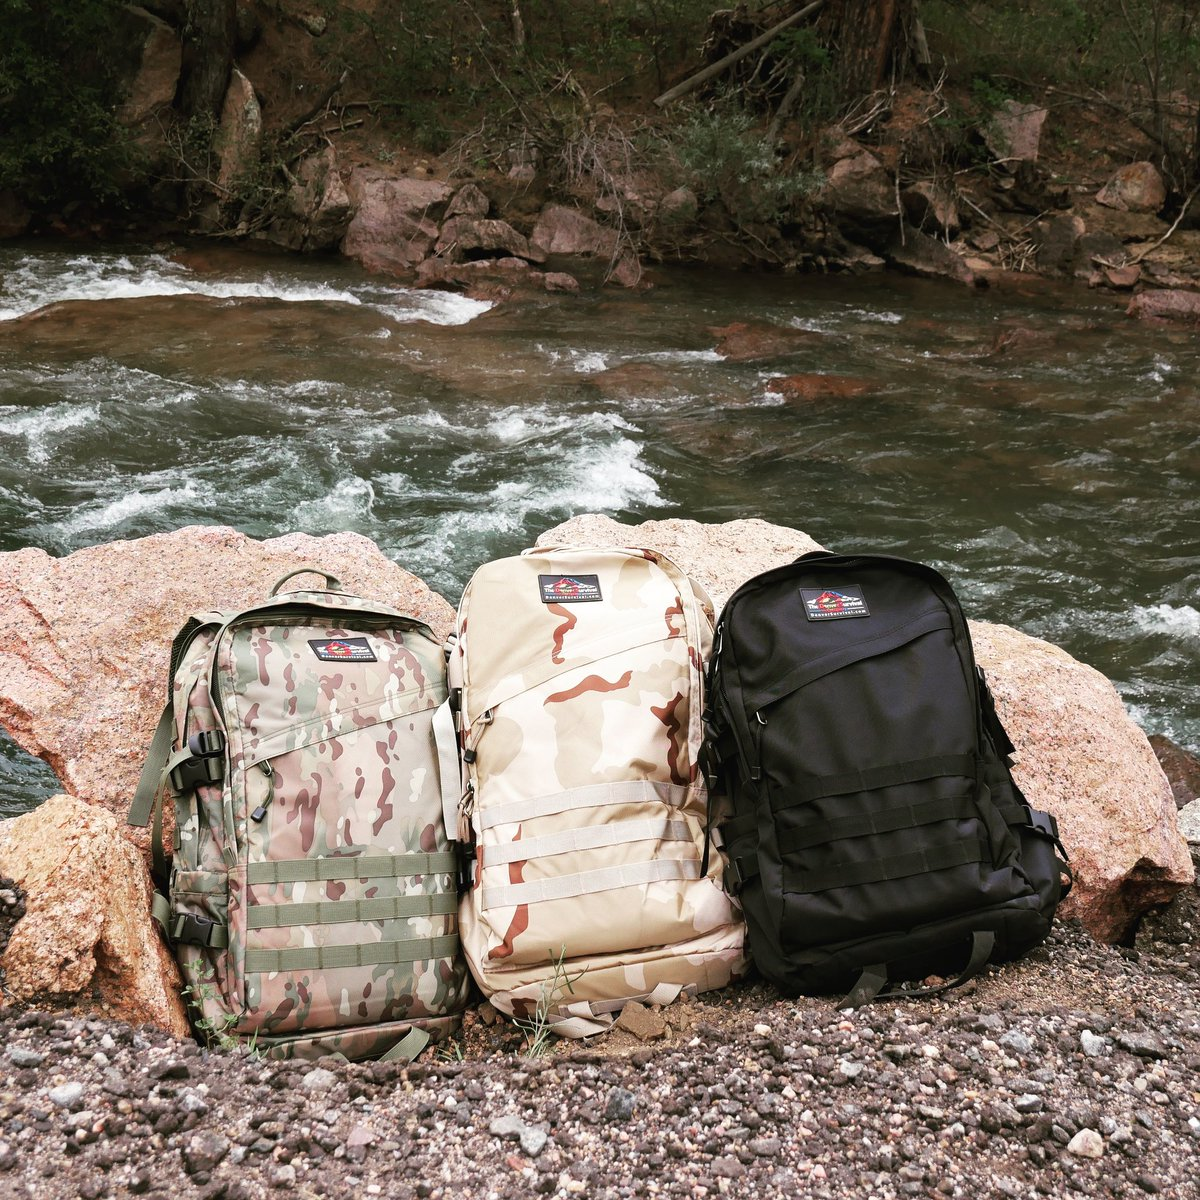 Which one are you taking??  #survival #preparedness #colorado #rockymountains #edc #emp  #urbansurvival #shtf  #survivaltips #survivalist #tactical #gear #outdoors #emergencykit #bugoutbag #foraging #prepper #prepping #denversurvival #wilderness #emergencypreparednesspic.twitter.com/n5QdOr0d8w